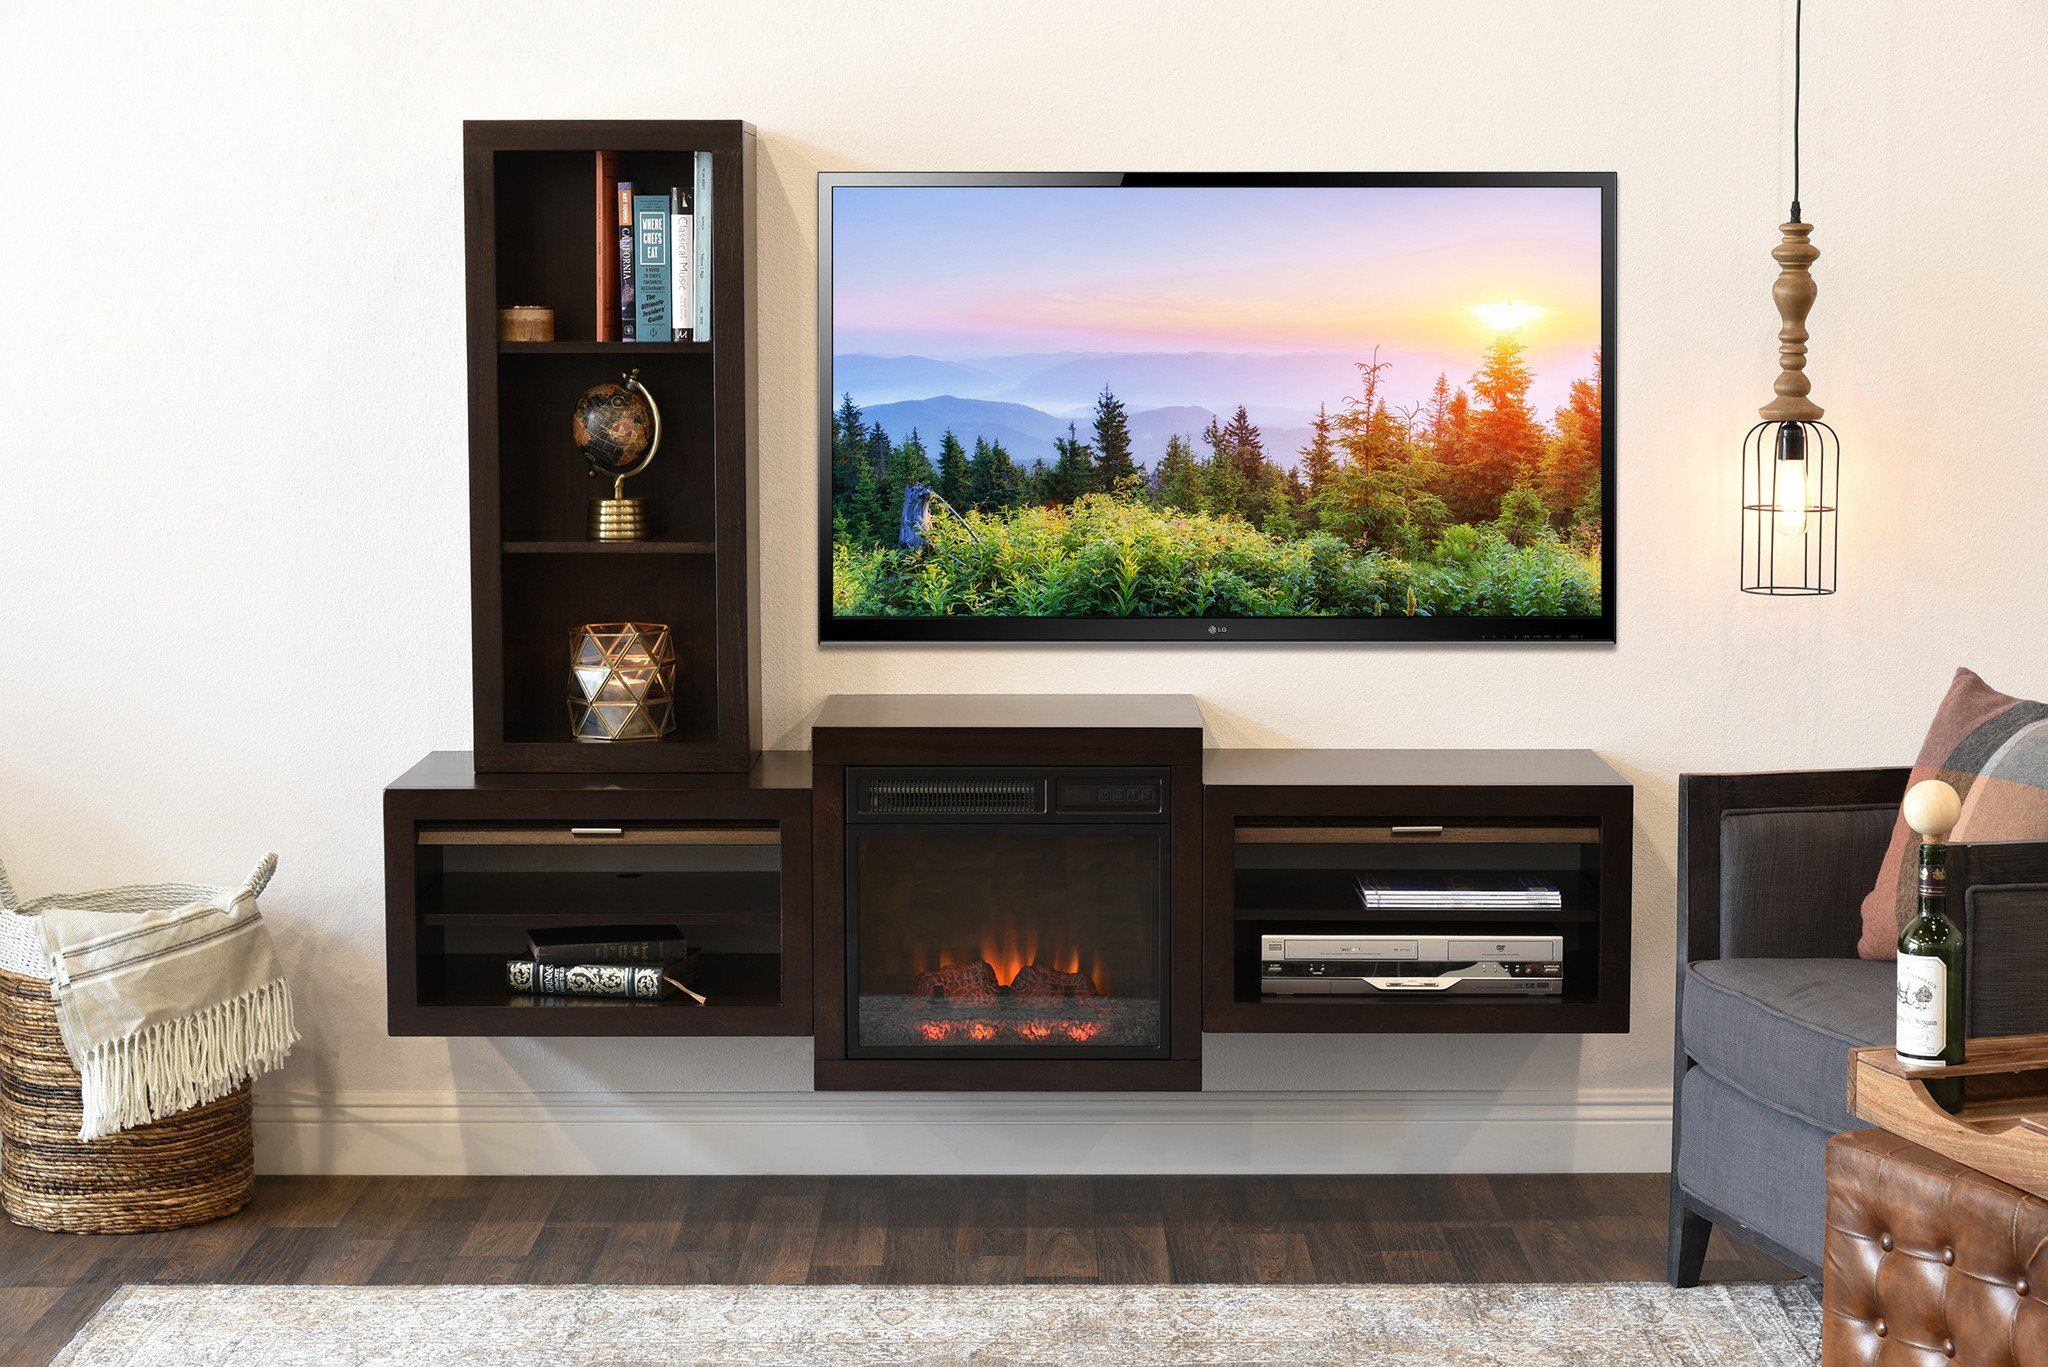 Floating Fireplace Floating Wall Mount TV Stand With Fireplace and Book Case Eco Geo Espresso 2048x